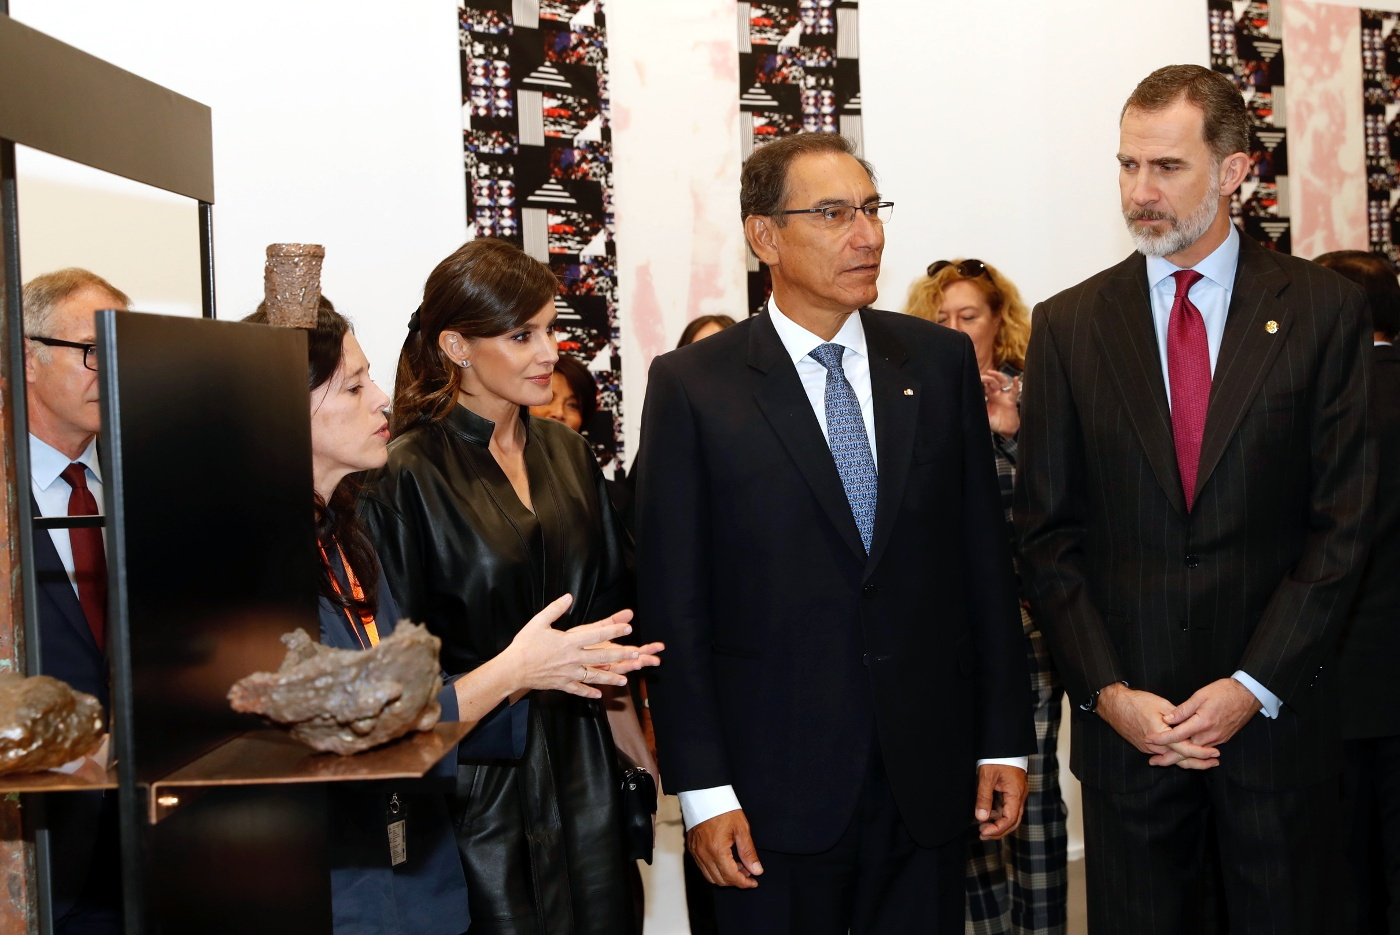 Felipe, Letizia, and Peru President held a brief meeting with the governing bodies of IFEMA